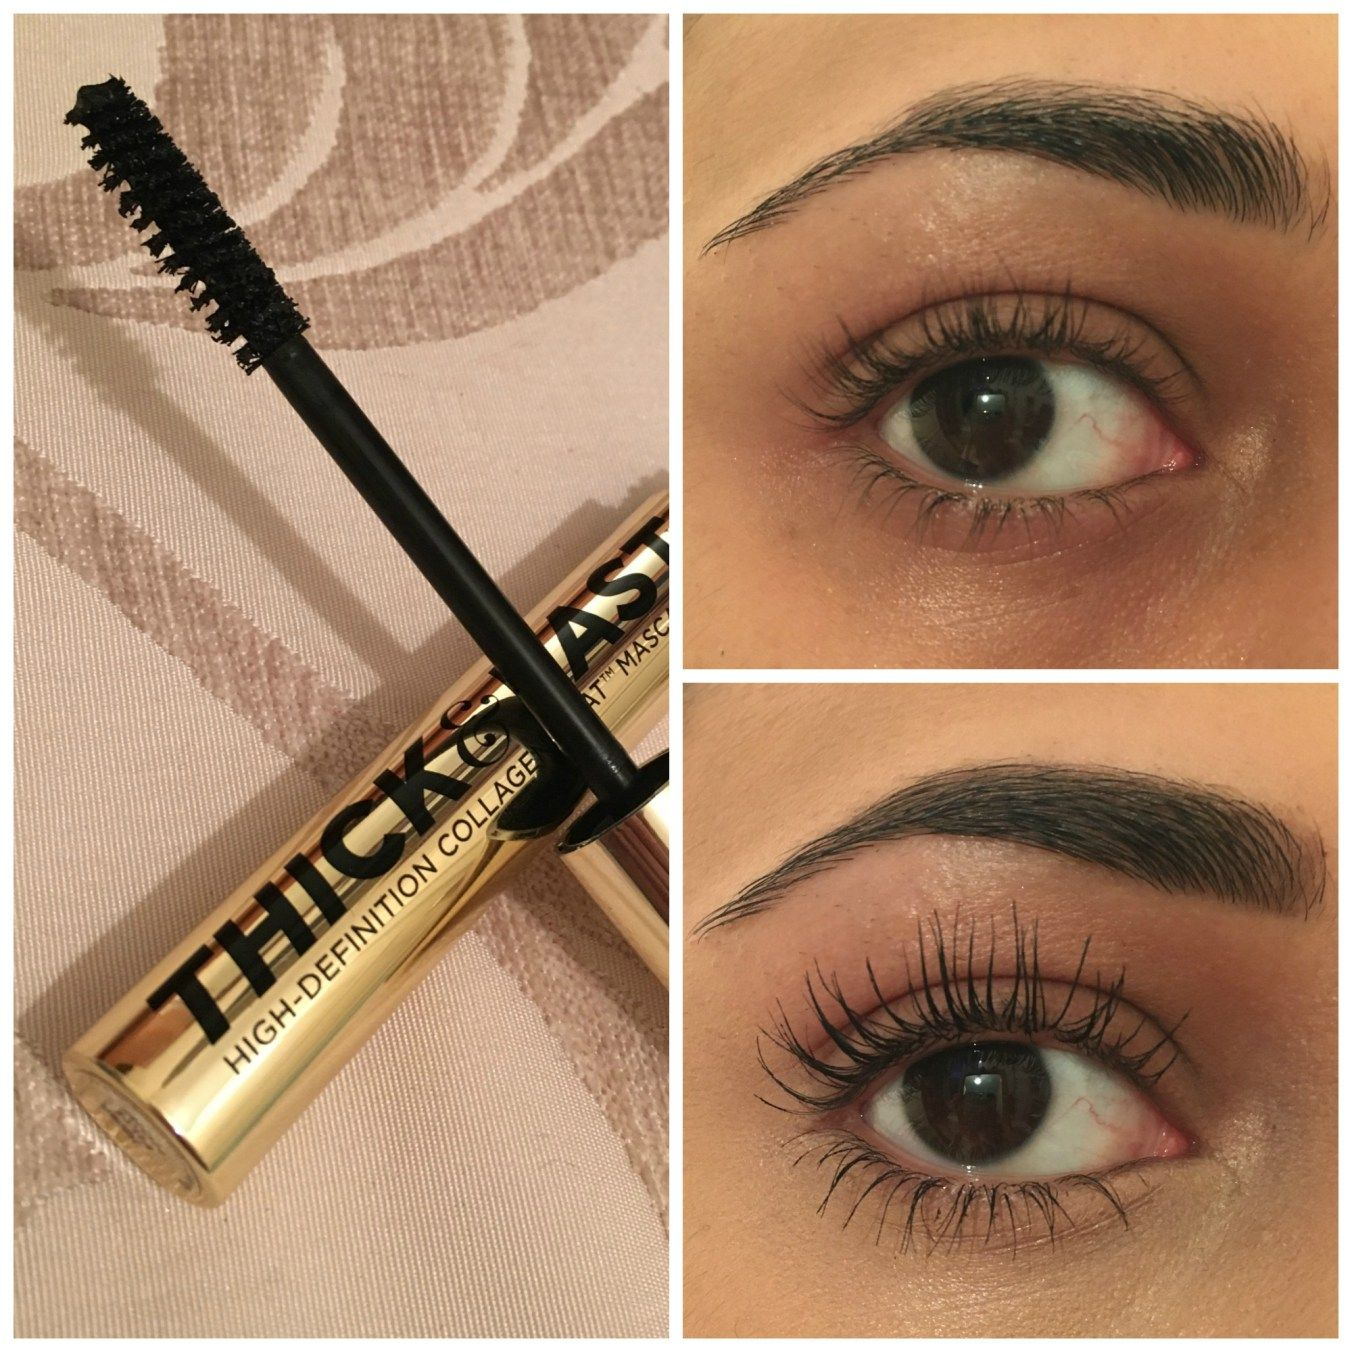 Soap Glory Thick Fast Lengthening Mascara Review Before And